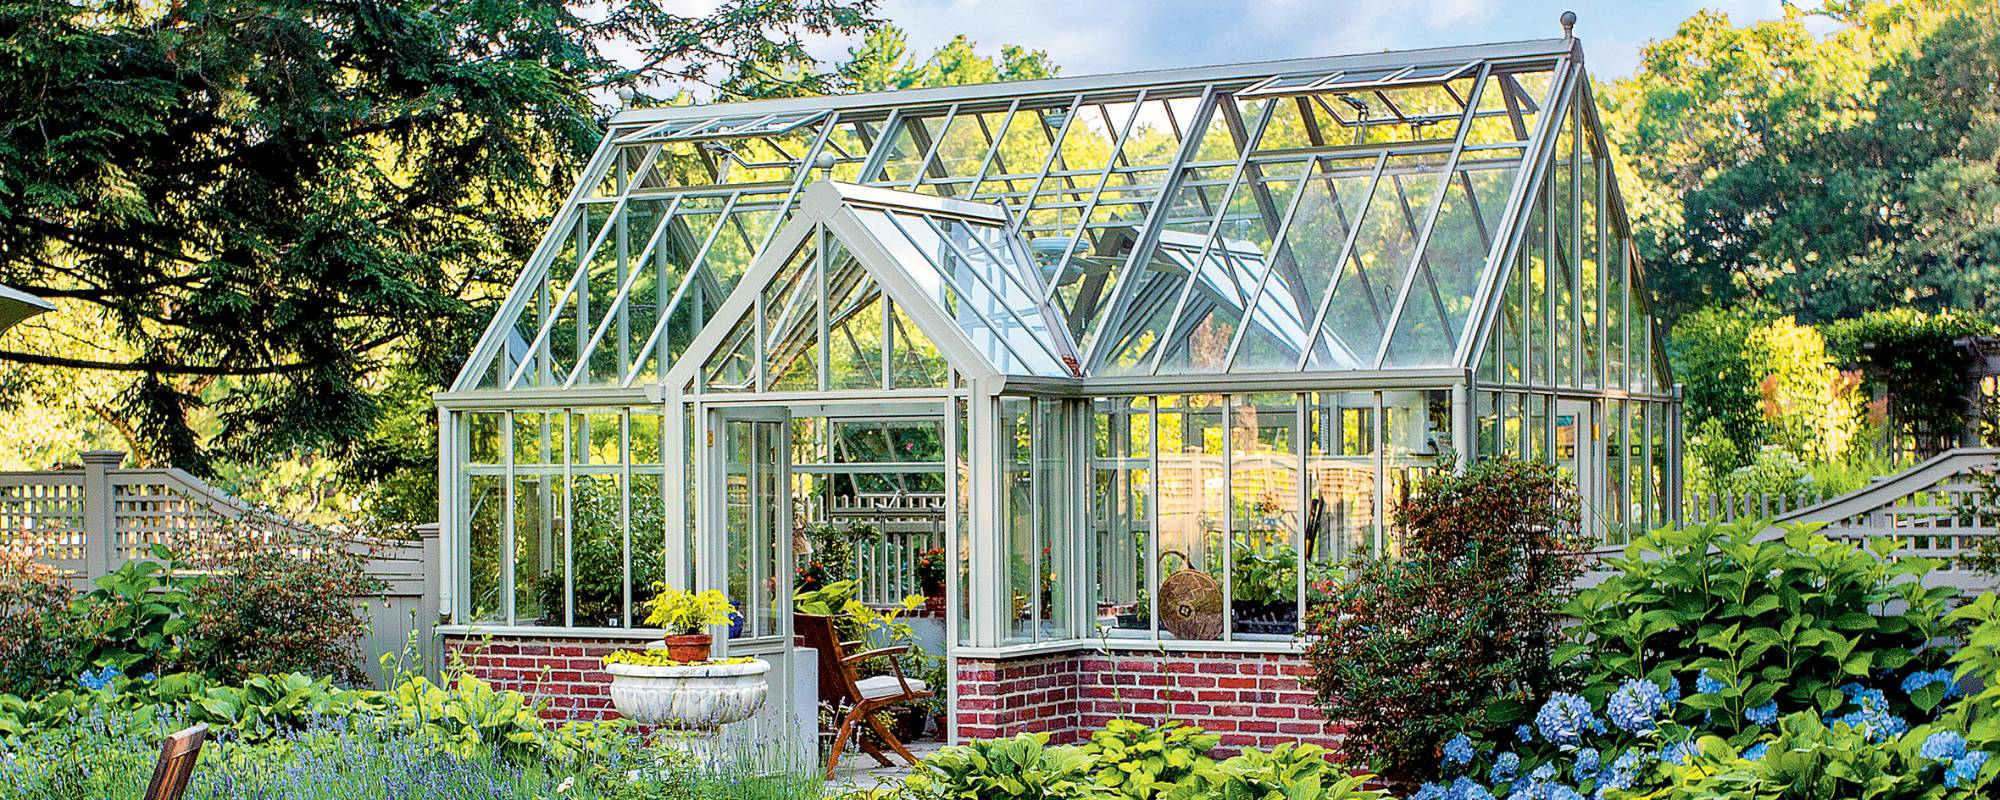 green house Manufacturing affordable and reliable residential, educational, and commercial greenhouses and conservatories.